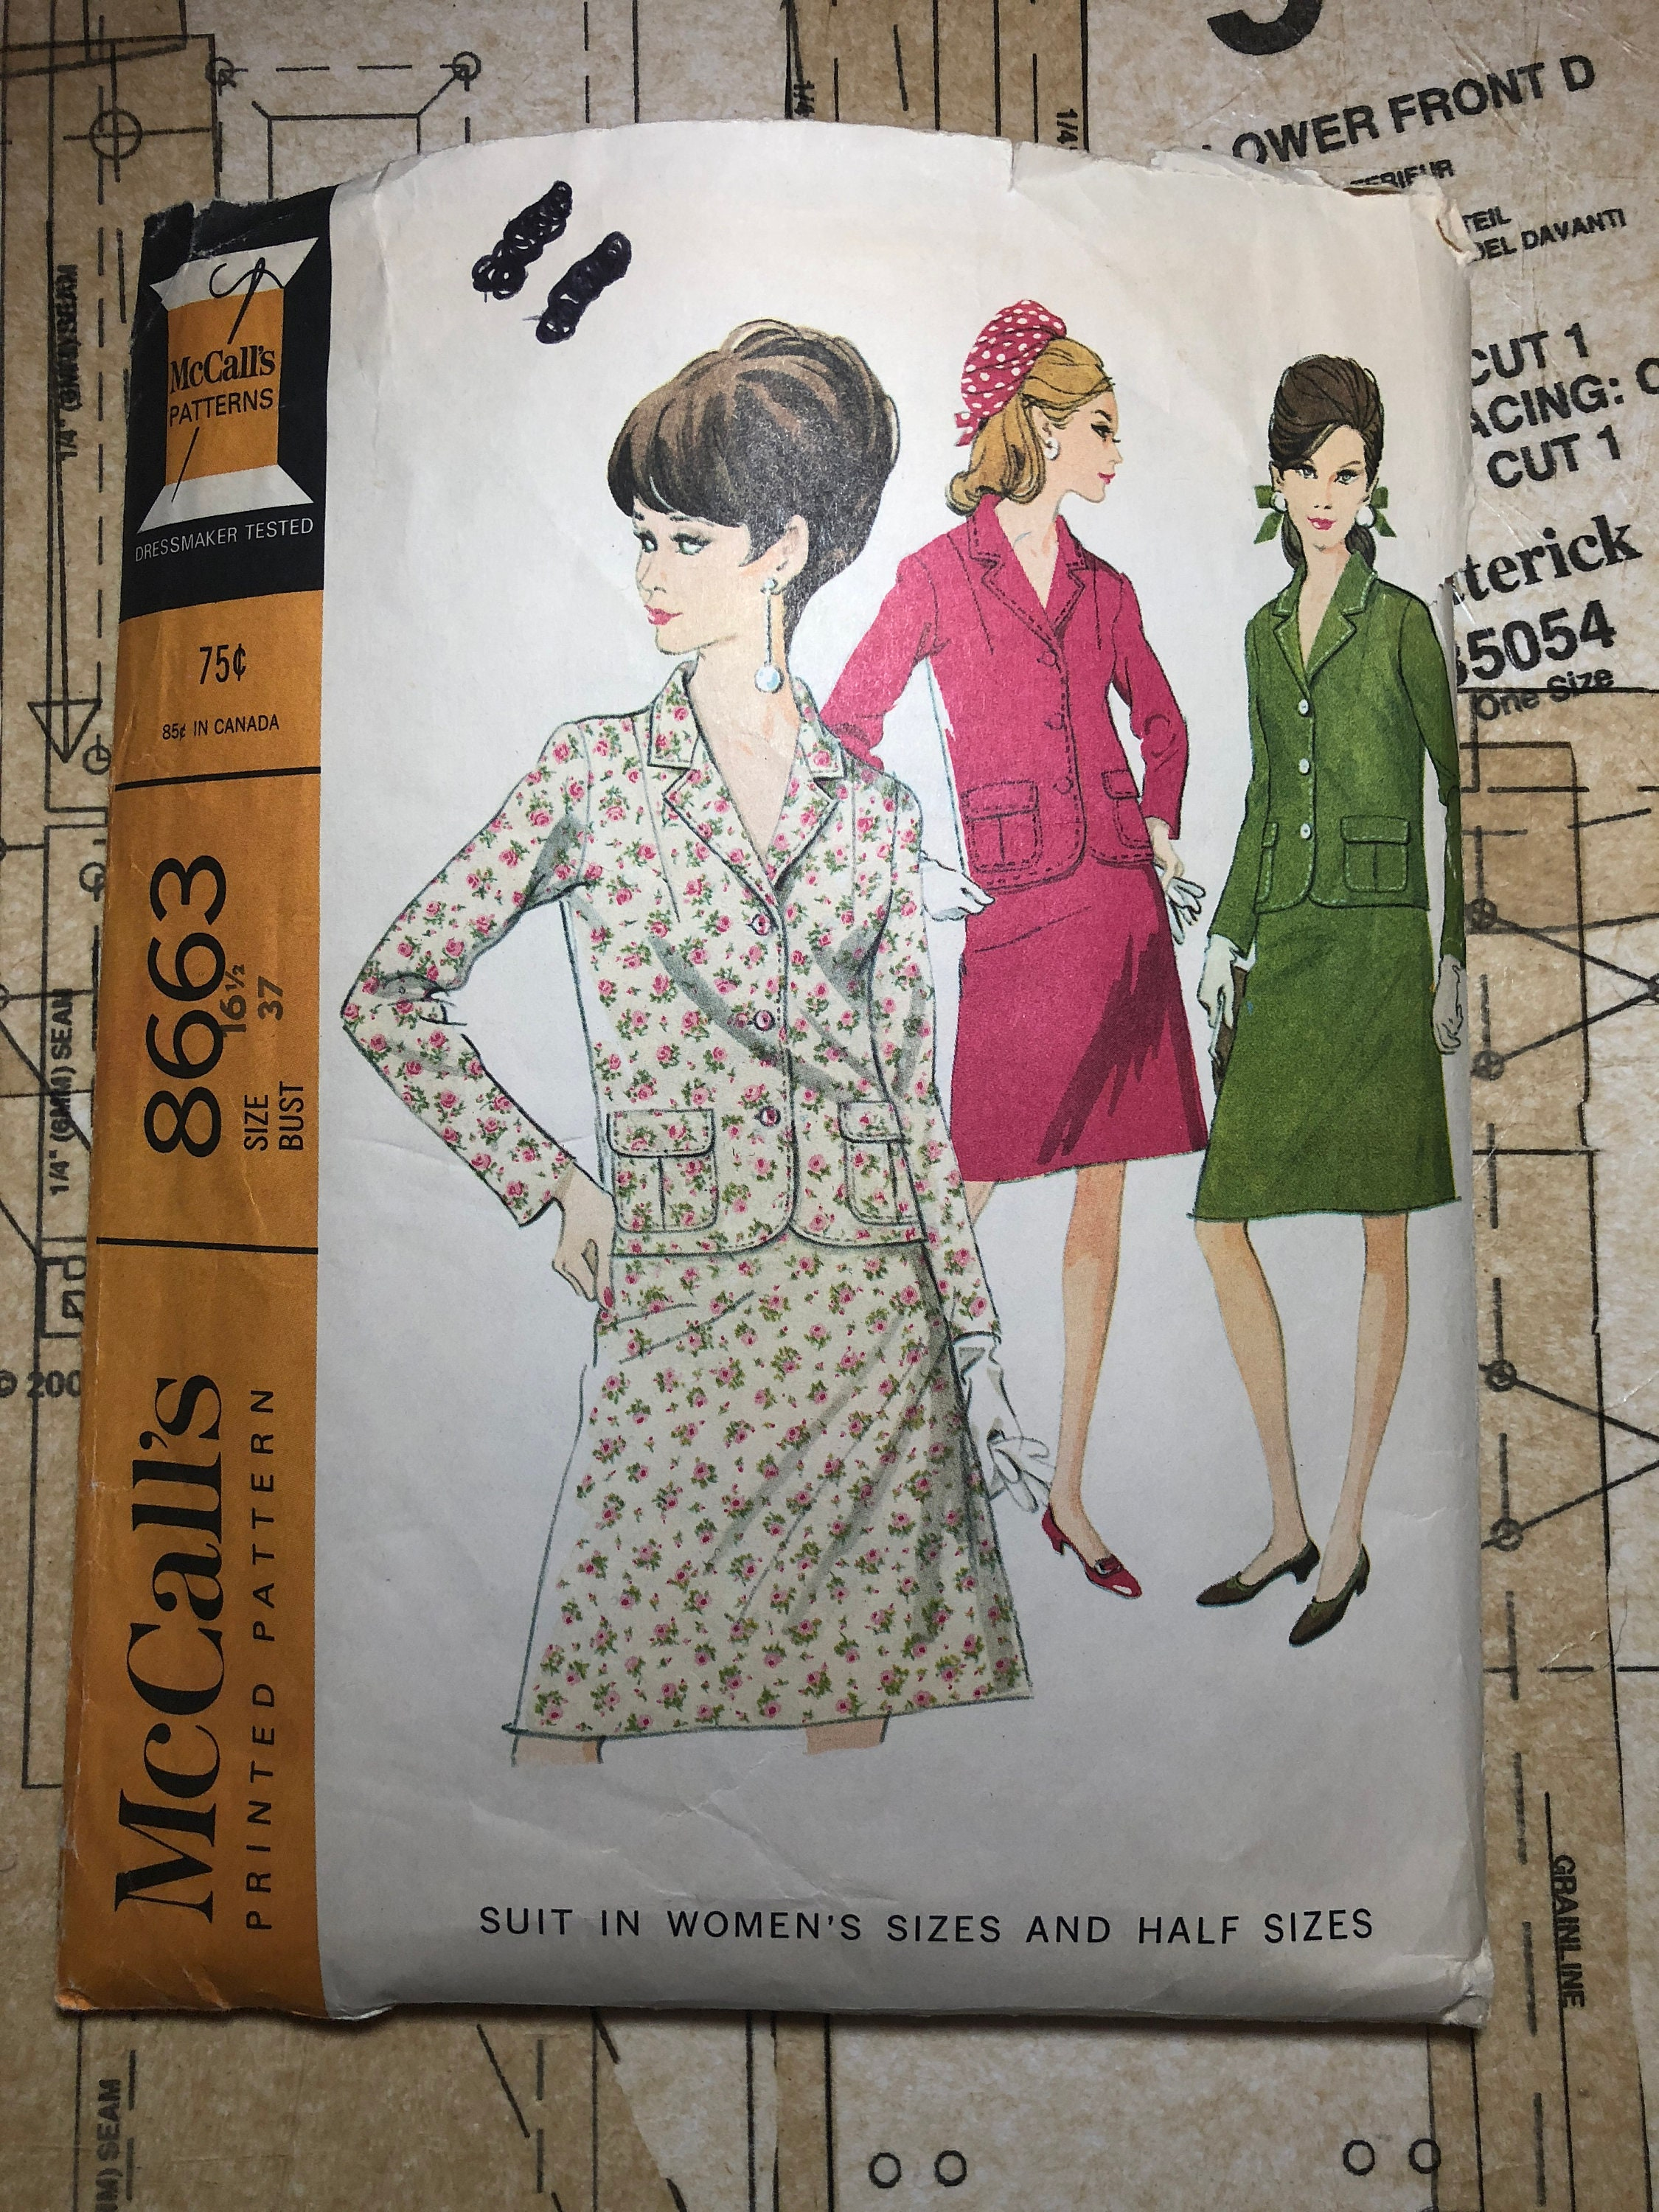 248147f55e Vintage 60s Skirt Suit Sewing Pattern Size 16 1/2 Bust 37 | Etsy